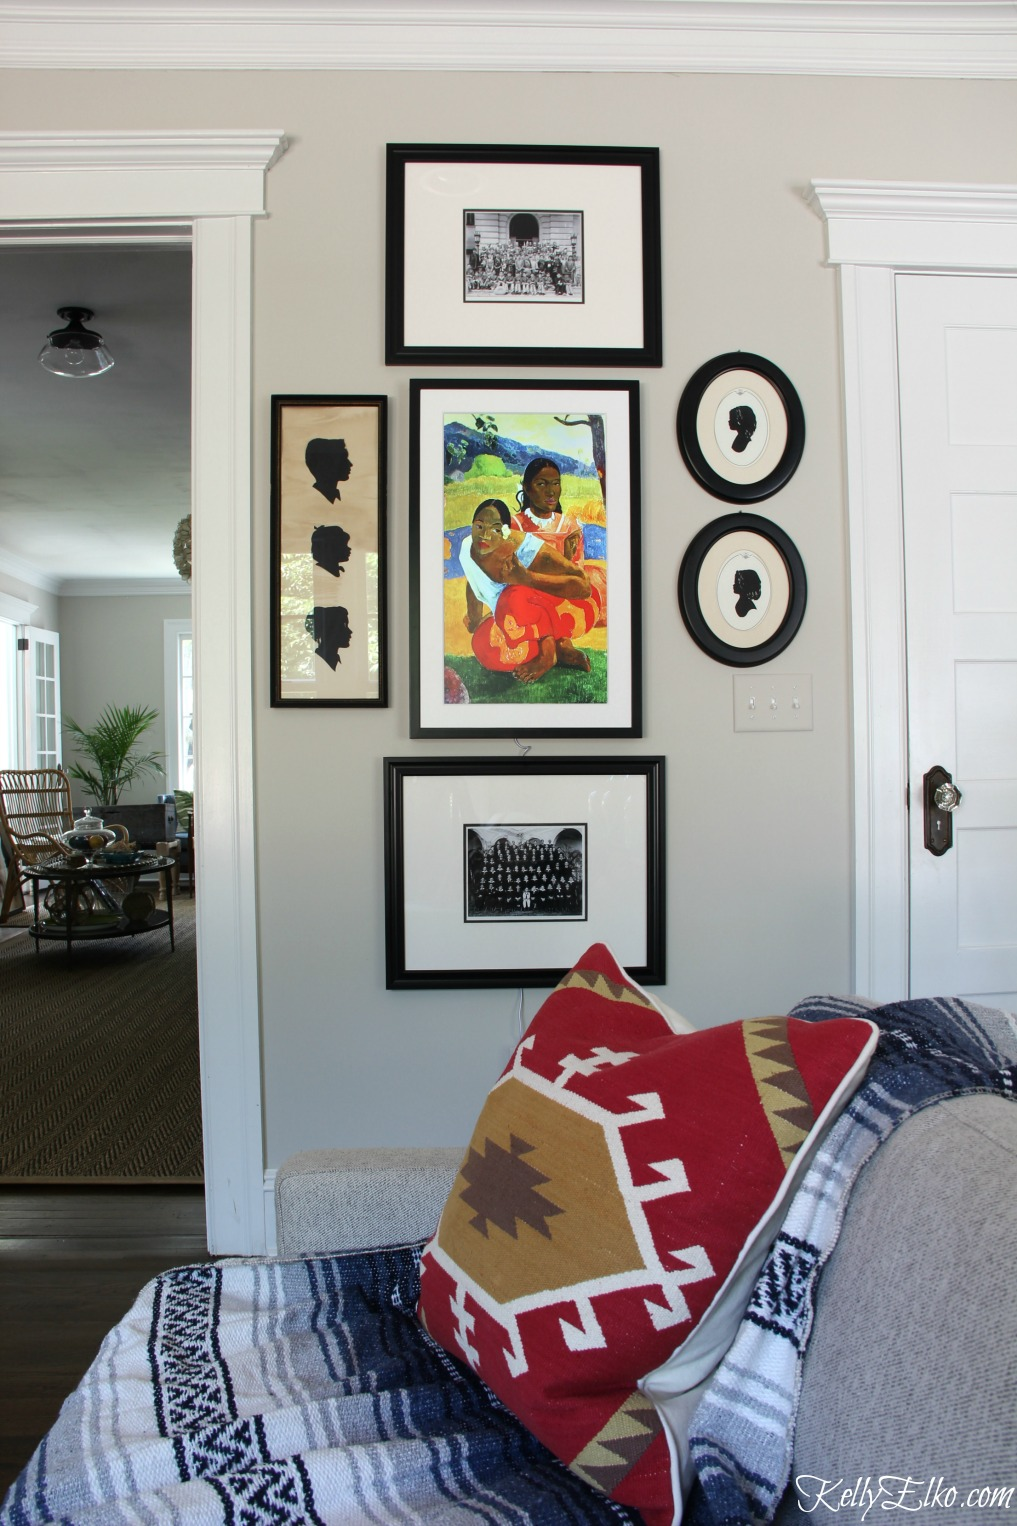 Meural Canvas - one frame with a rotating selection from 30,000 pieces of art kellyelko.com